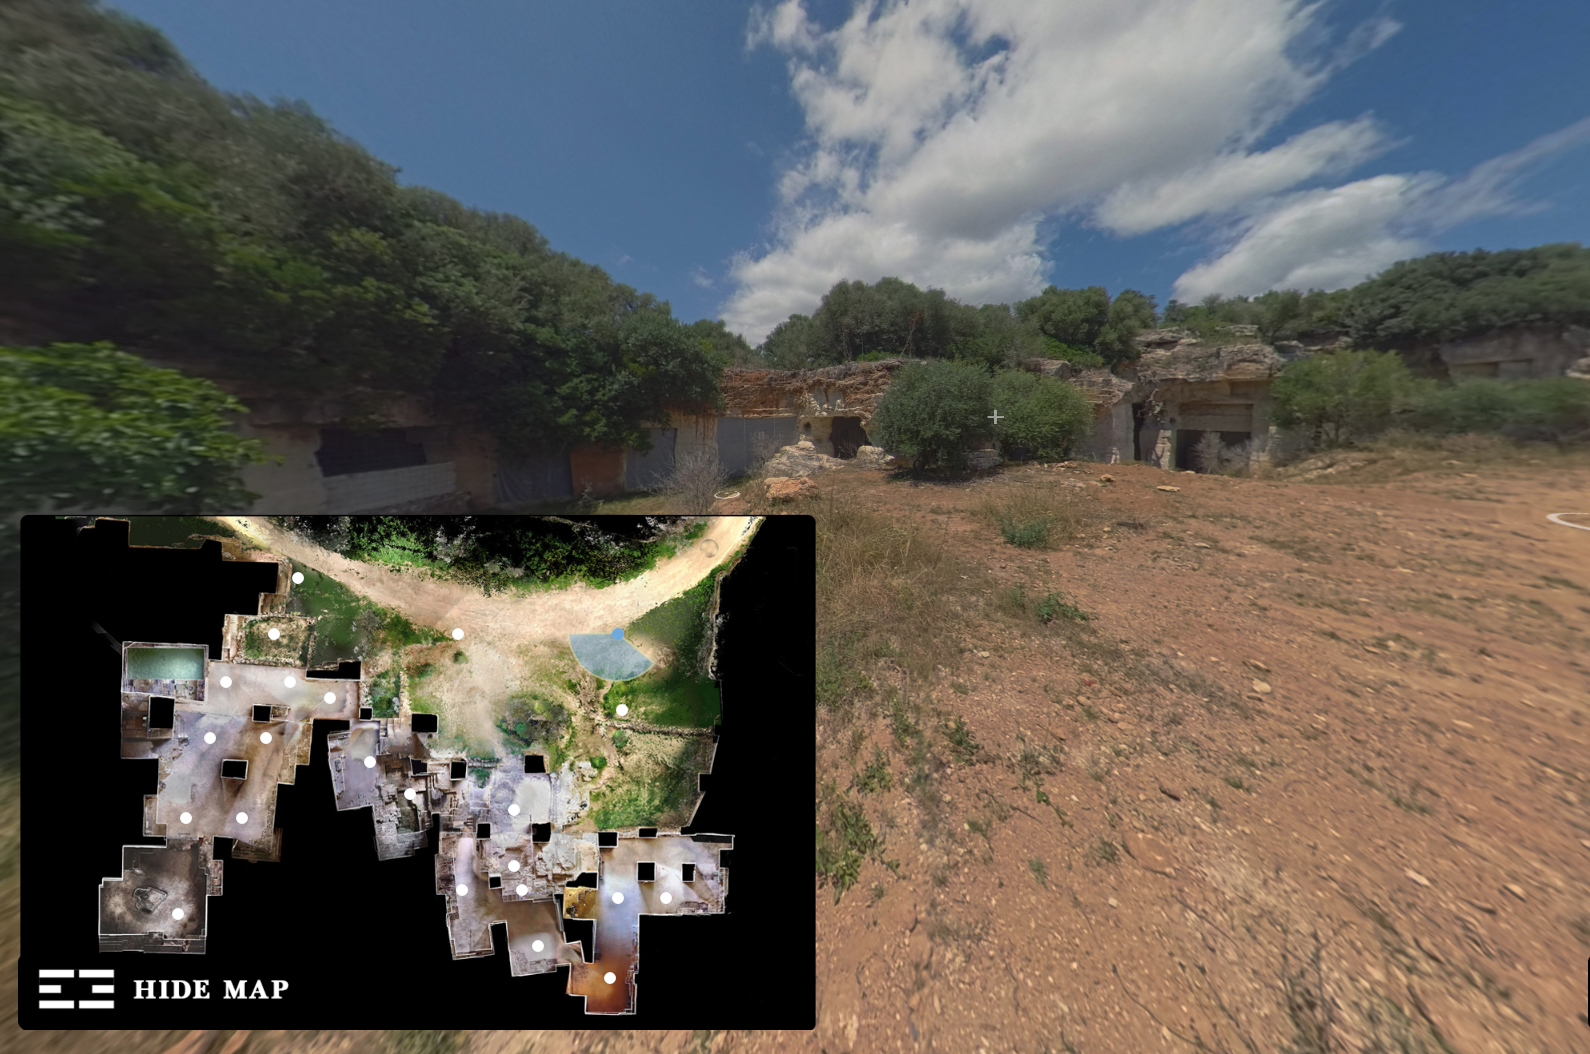 An overlay of a map over a google streetview photo of a quarry, from 'T' Space